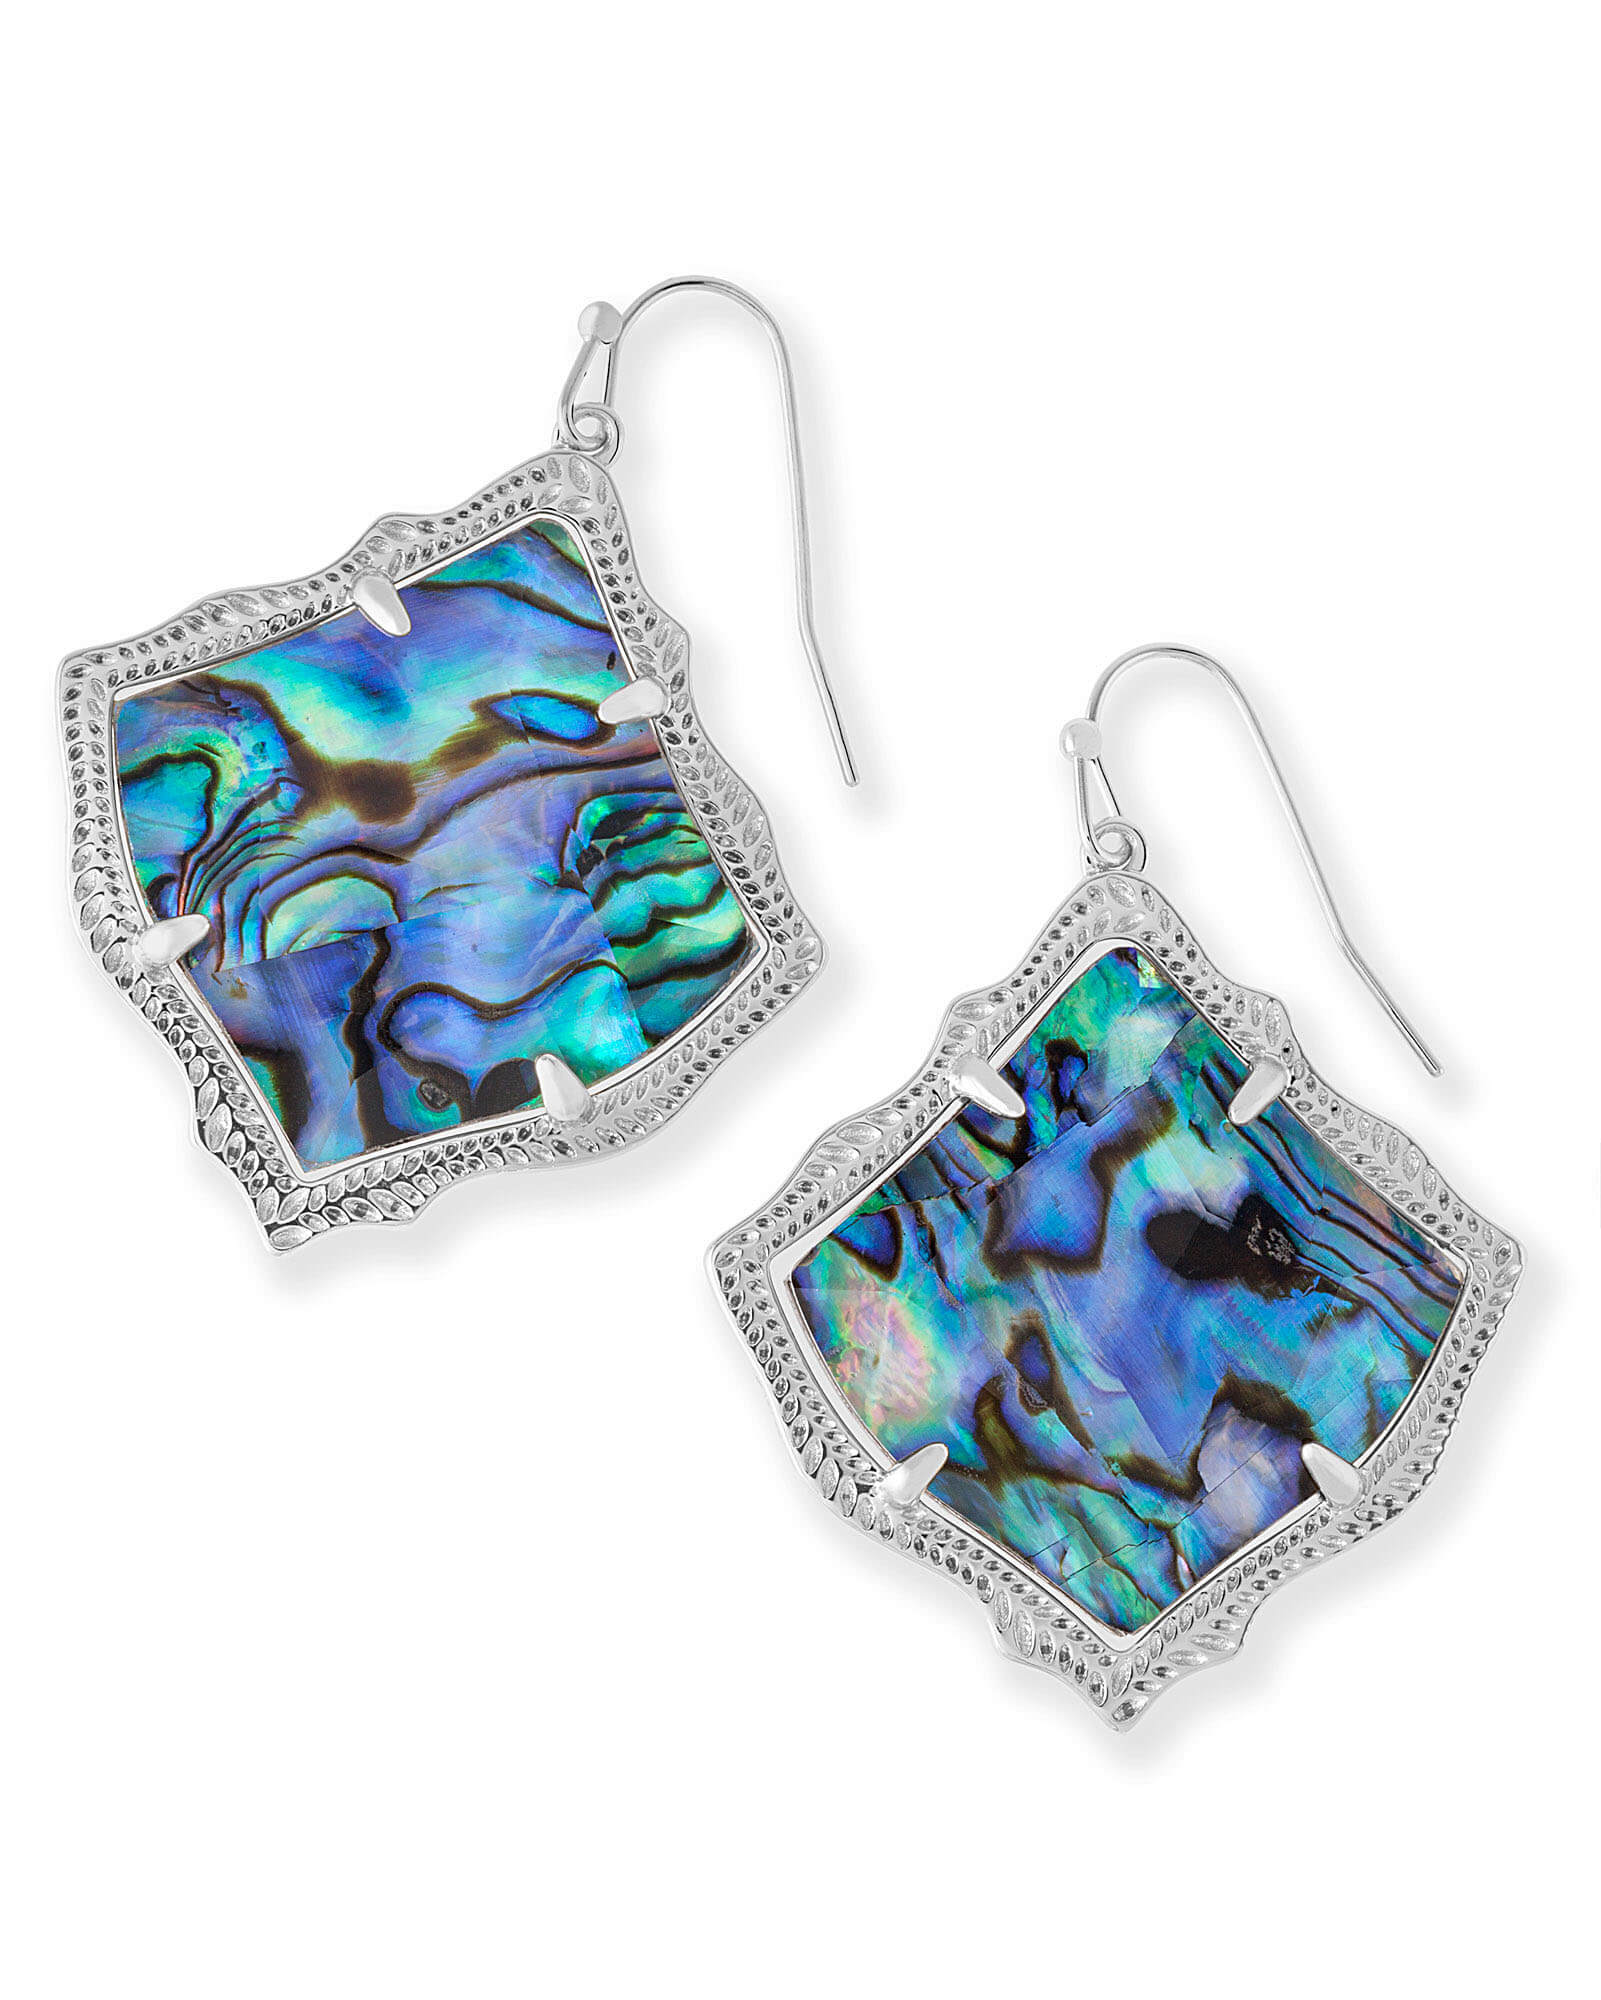 Kirsten Silver Drop Earrings in Abalone Shell